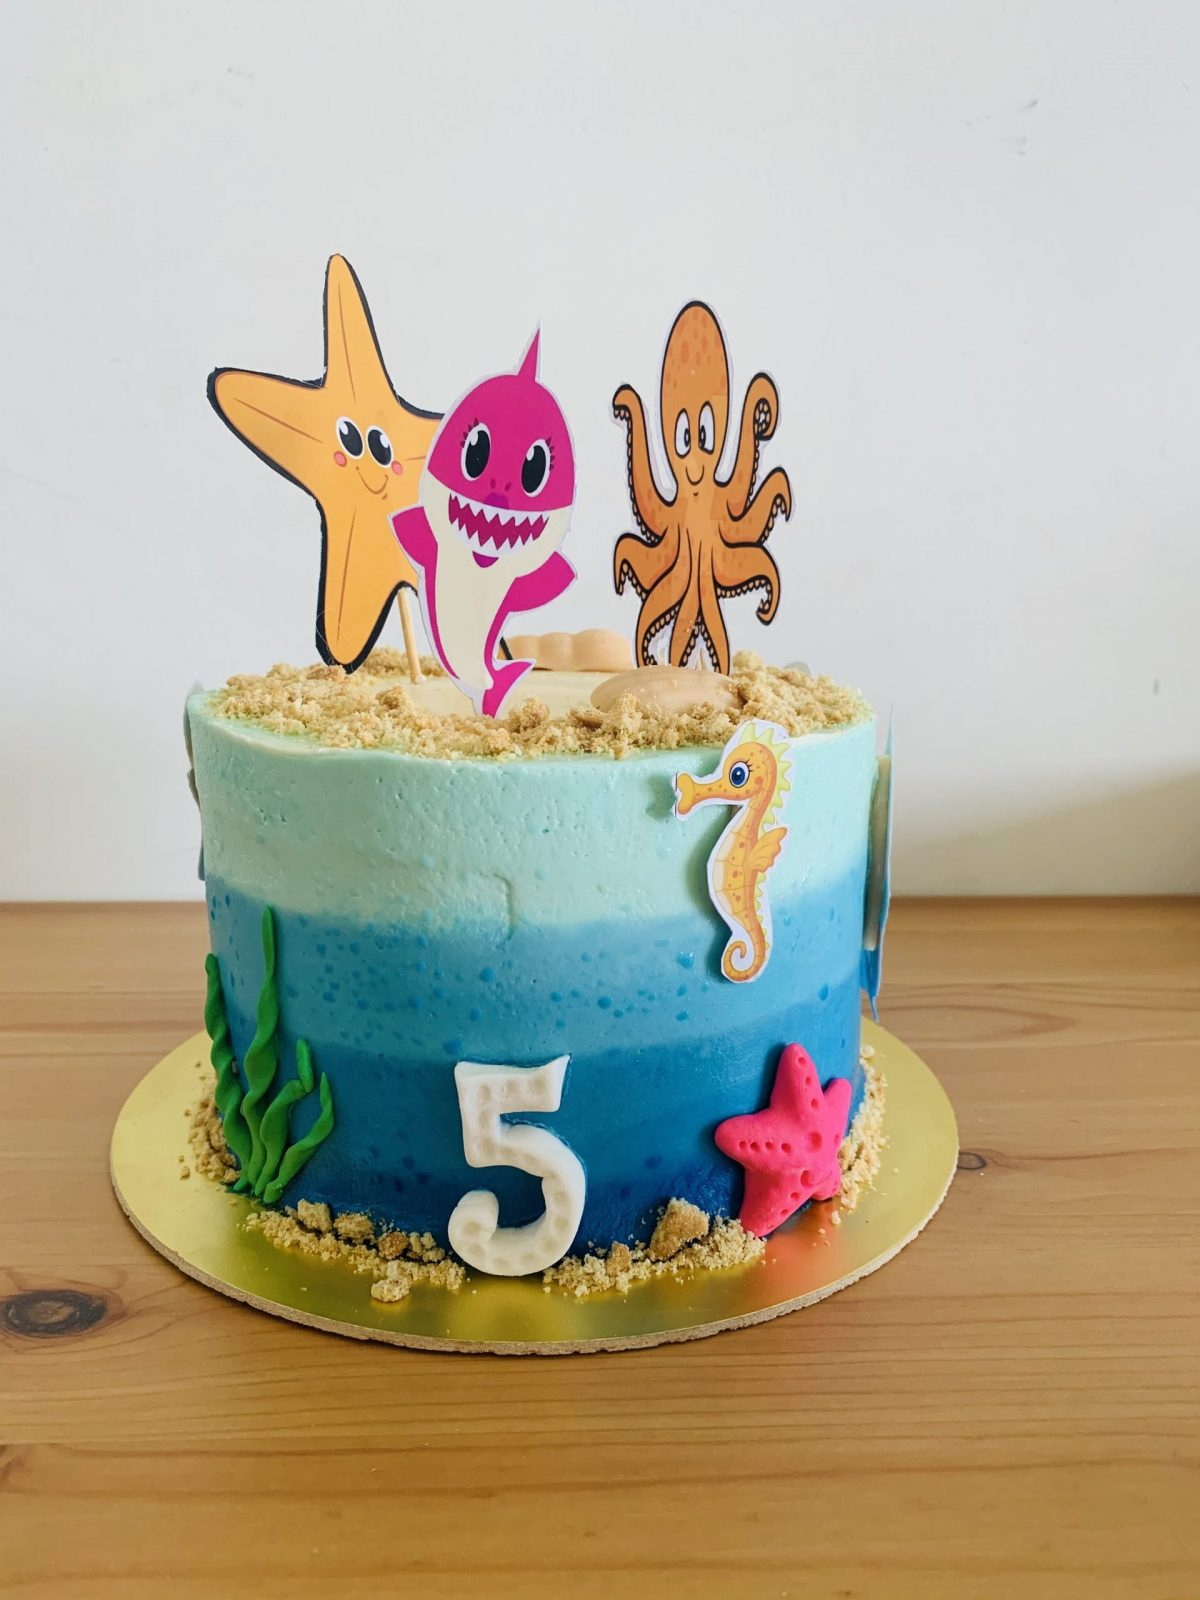 ocean-themed-birthday-cake-layers-of-the-ocean-cake